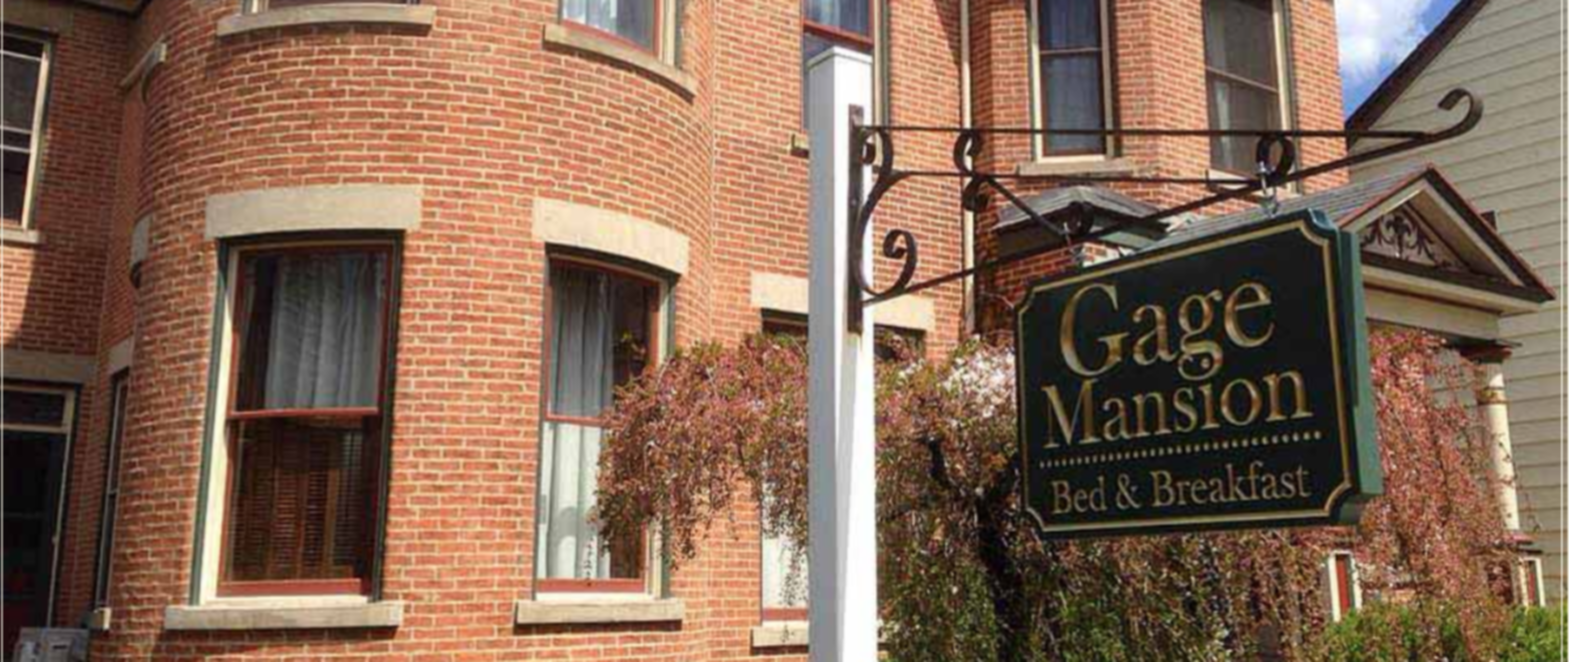 A sign in front of a brick building at Gage Mansion Bed and Breakfast.